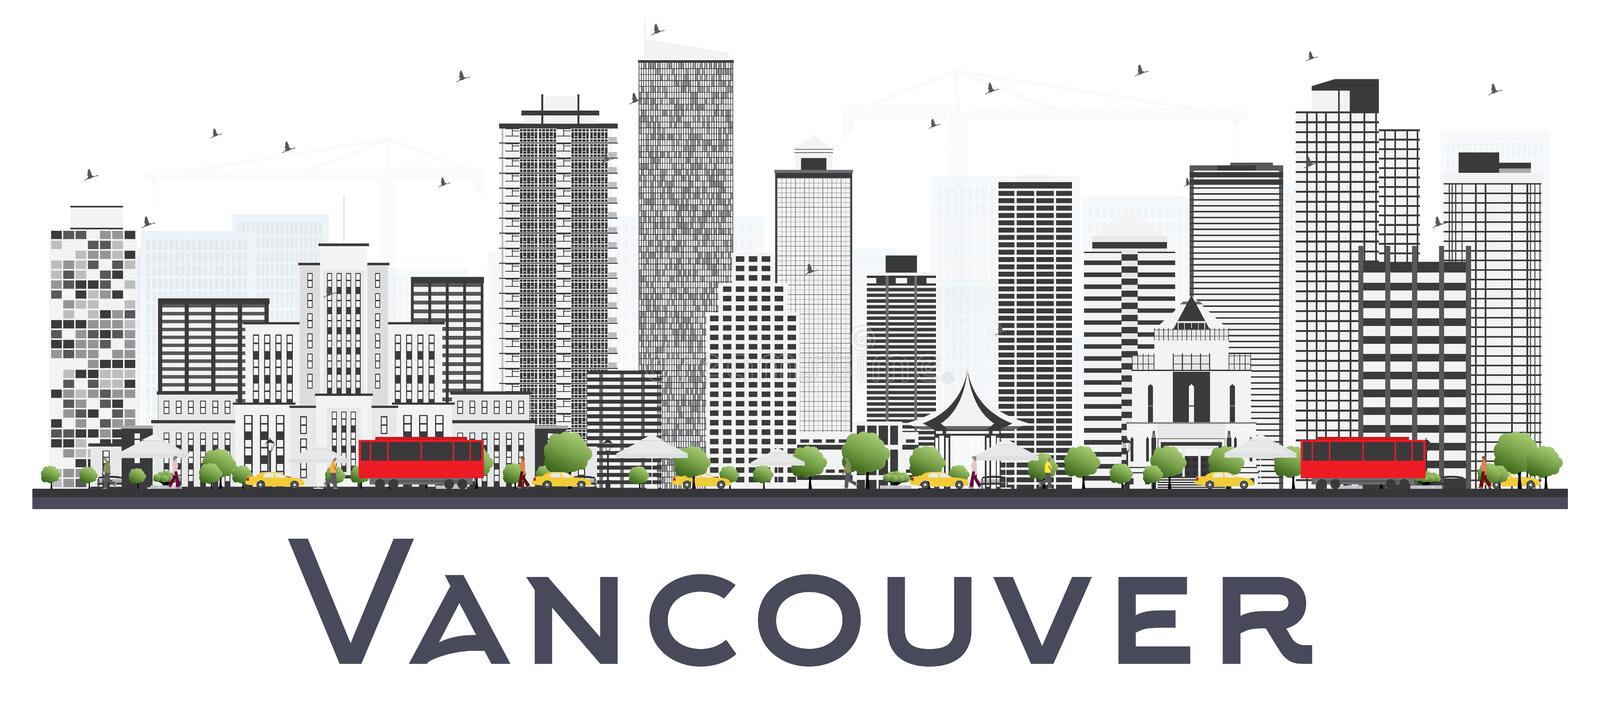 Vancouver Canada City Skyline with Gray Buildings Isolated on White Background. Vector Illustration. Business Travel and Tourism Concept with Modern Buildings stock illustration